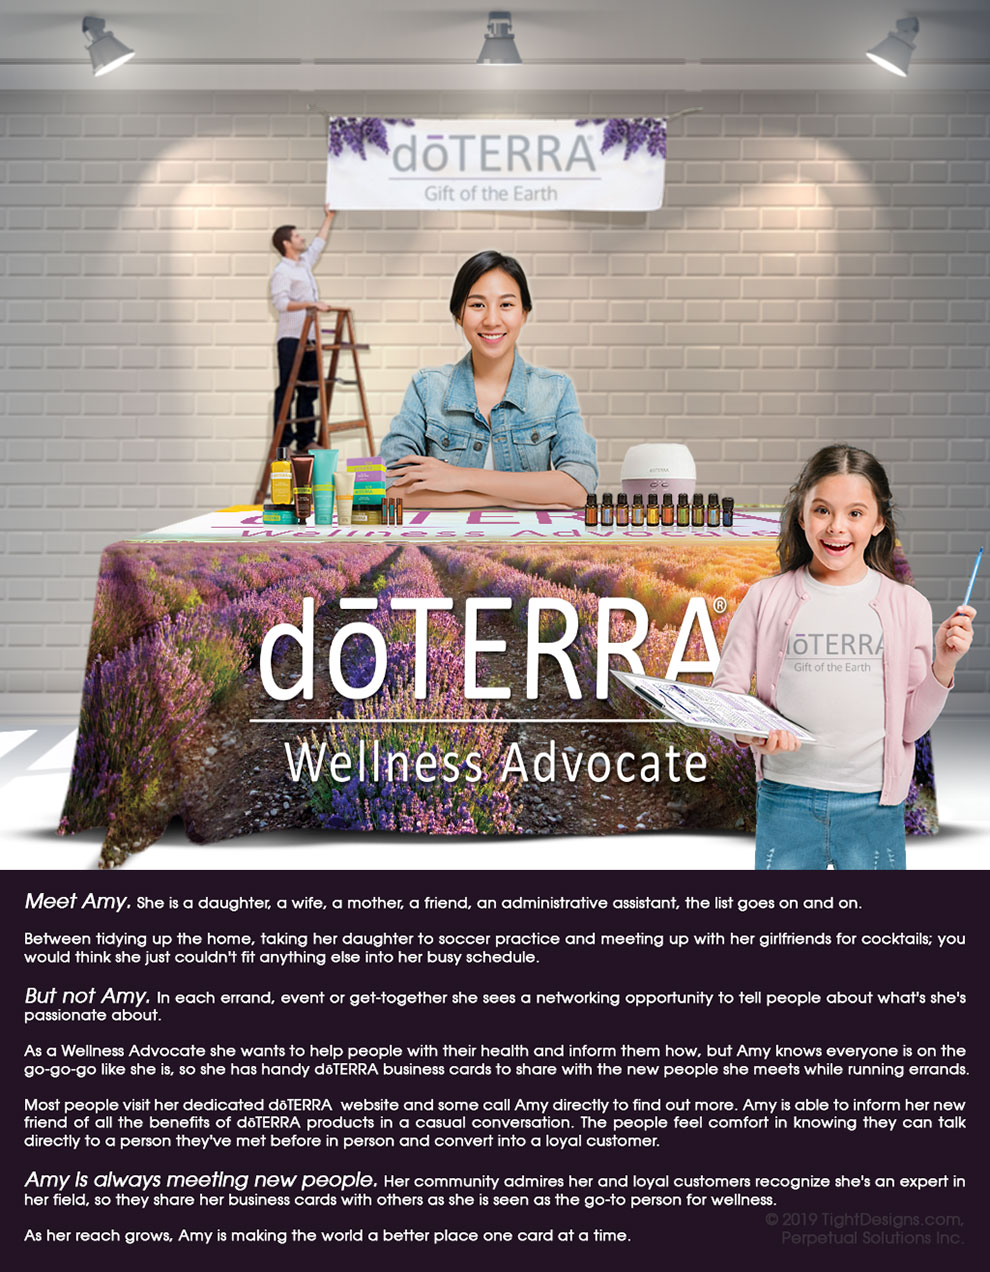 Amy is a doTERRA Wellness Advocate who uses TightDesigns.com marketing materials to maximize her networking opportunities.